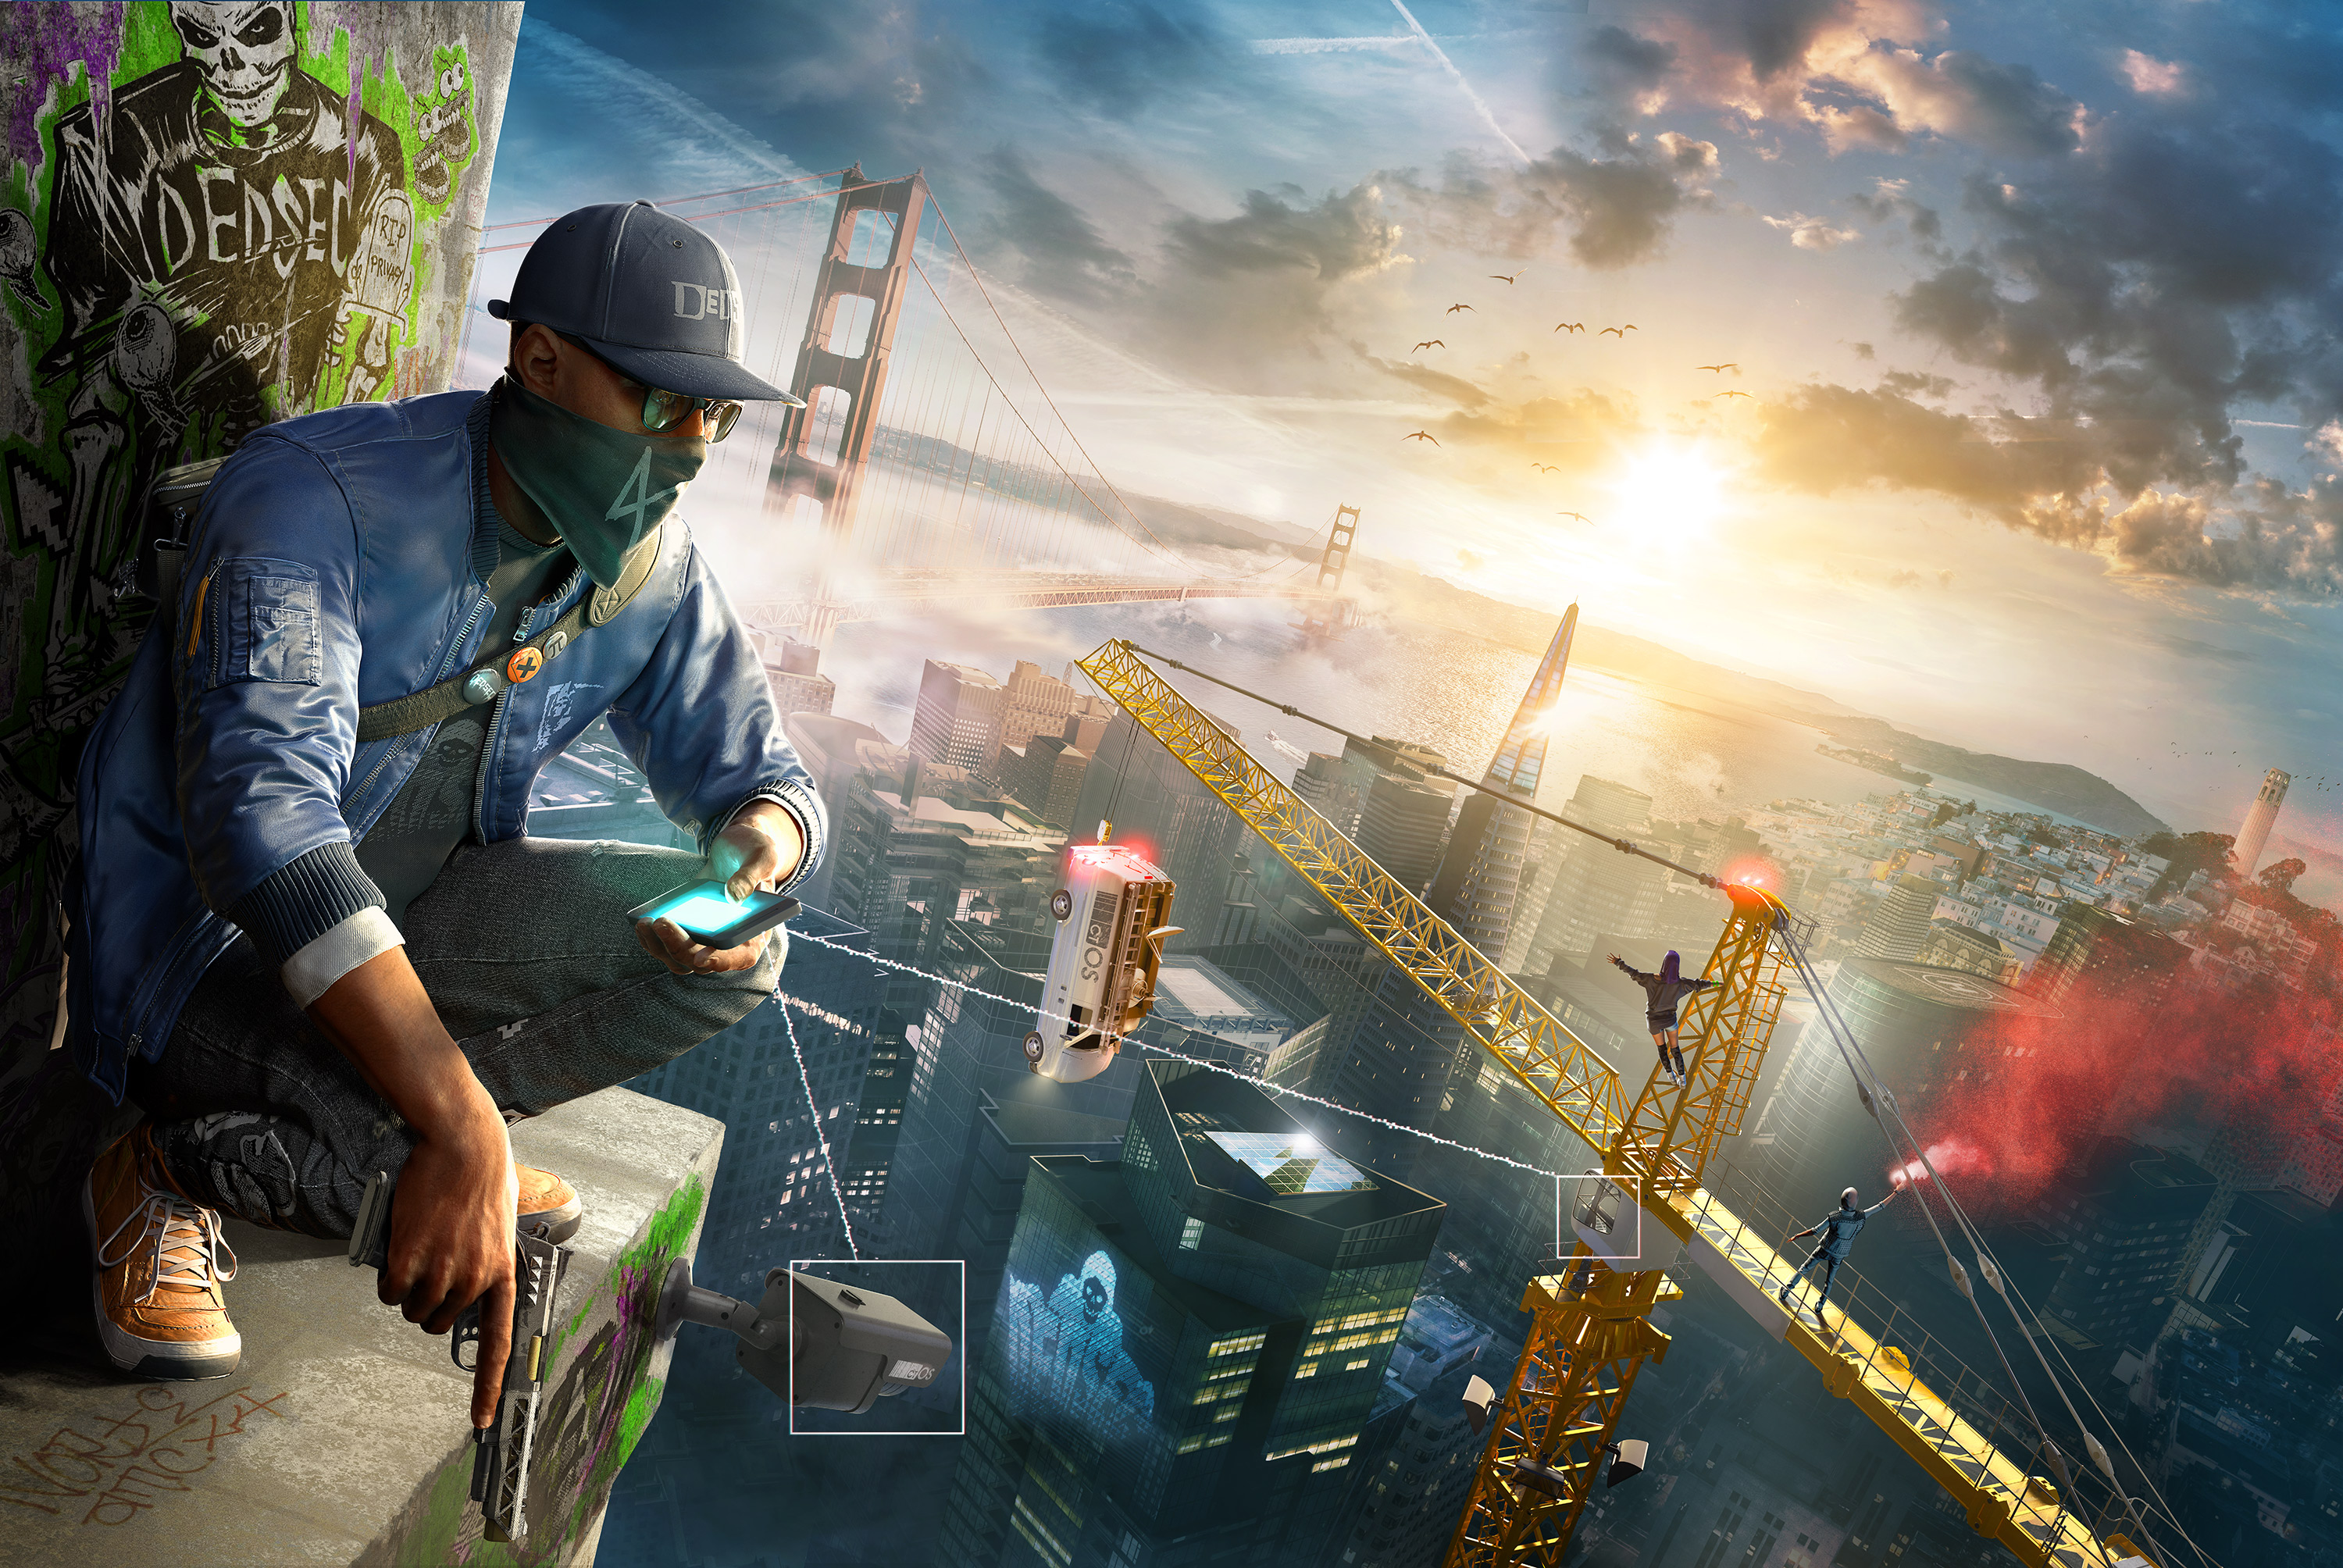 watch dogs 2 video game wide wallpaper 62001